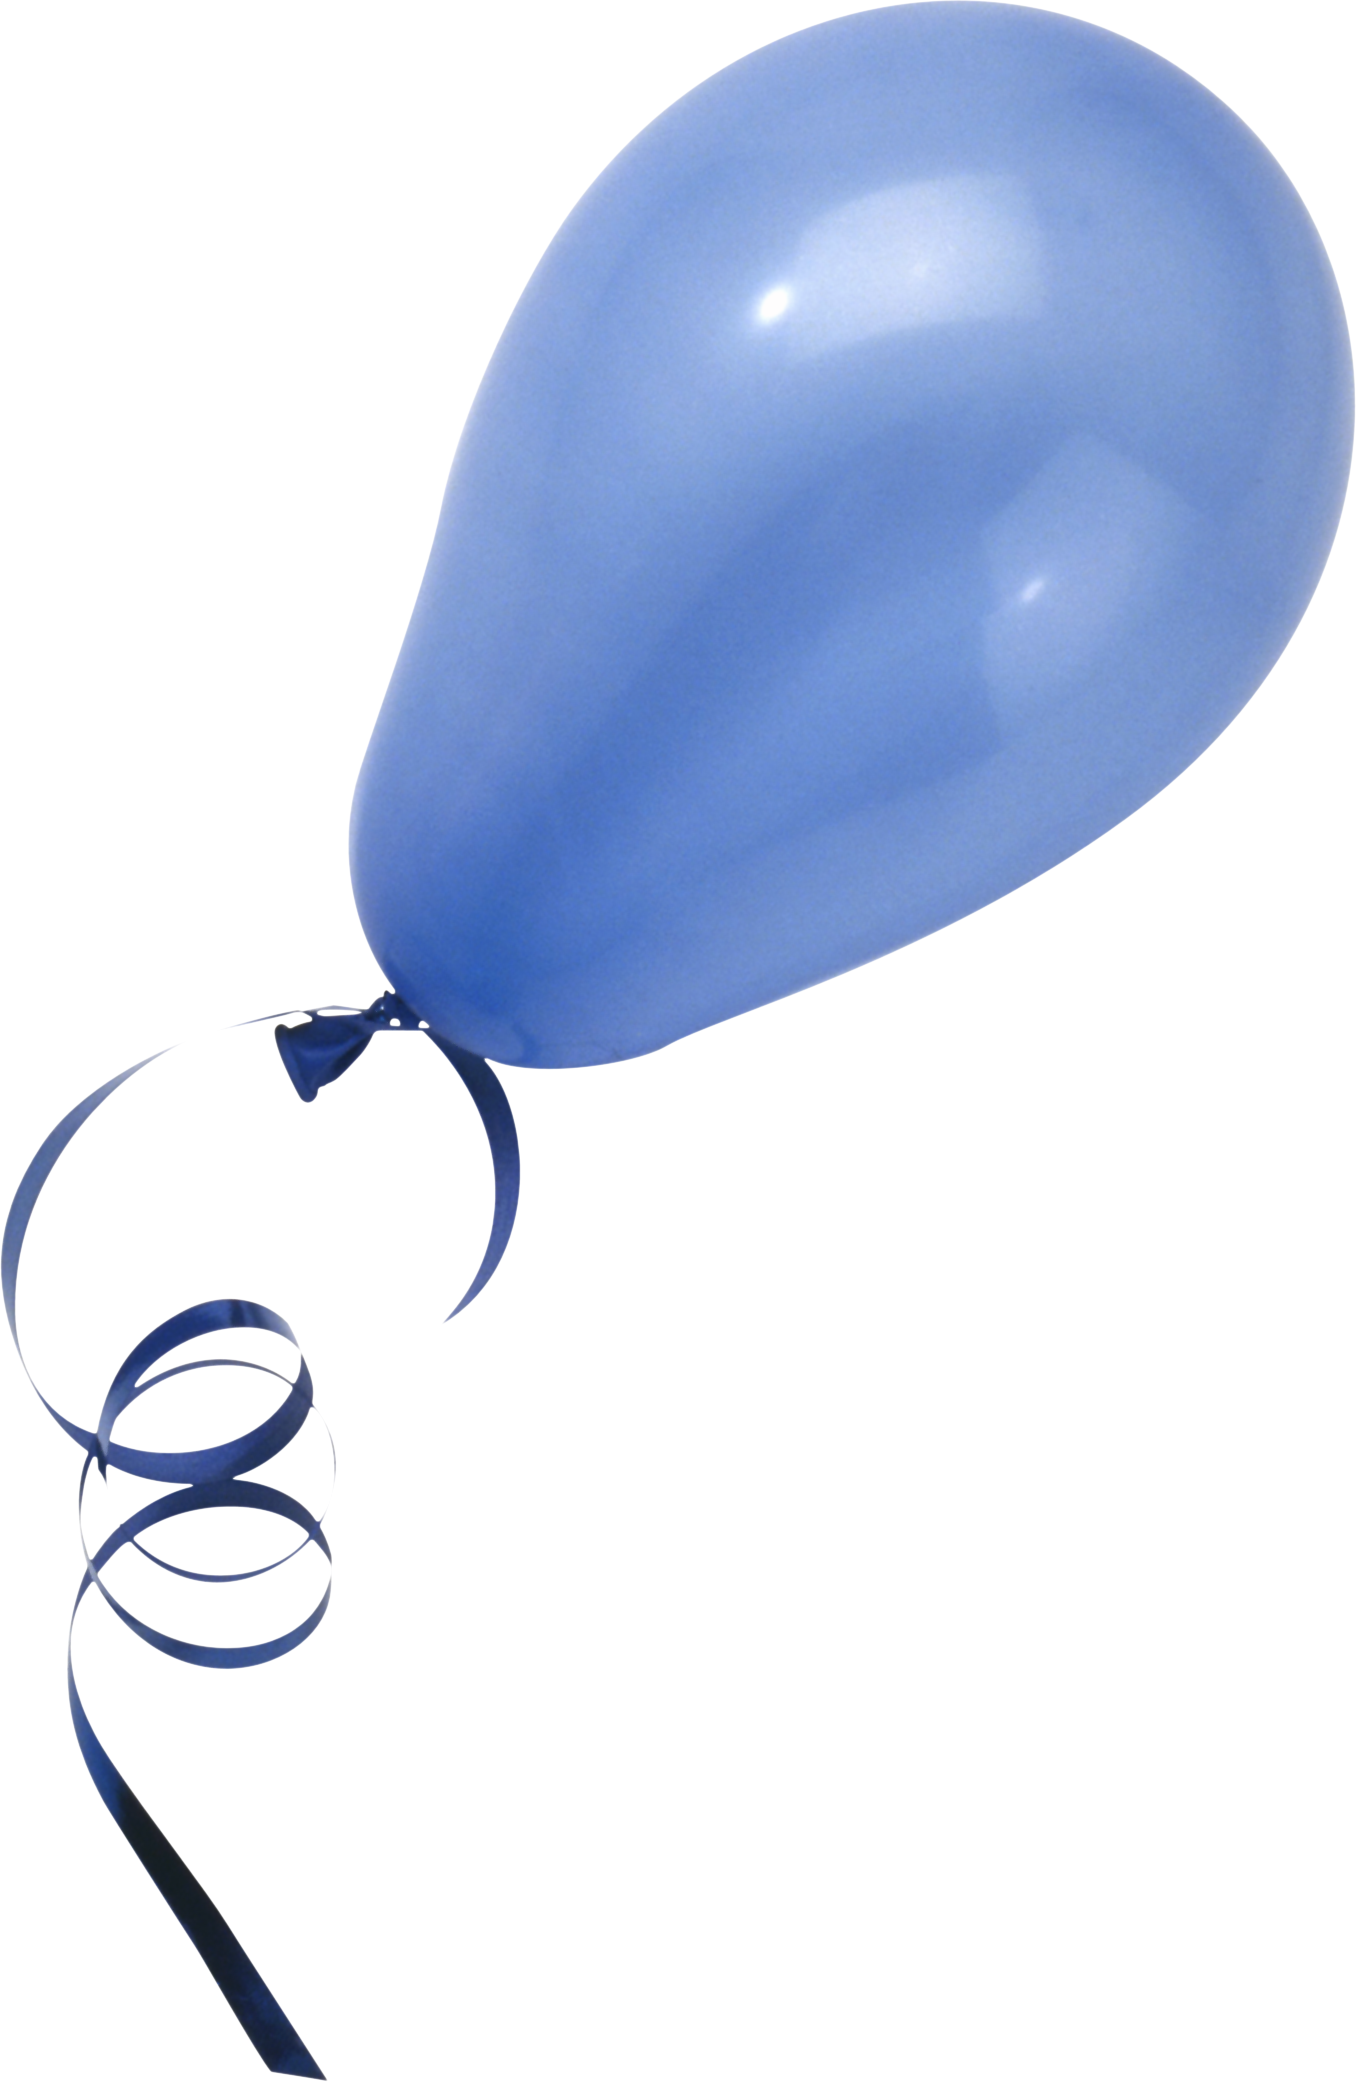 Blue Balloon PNG Image.